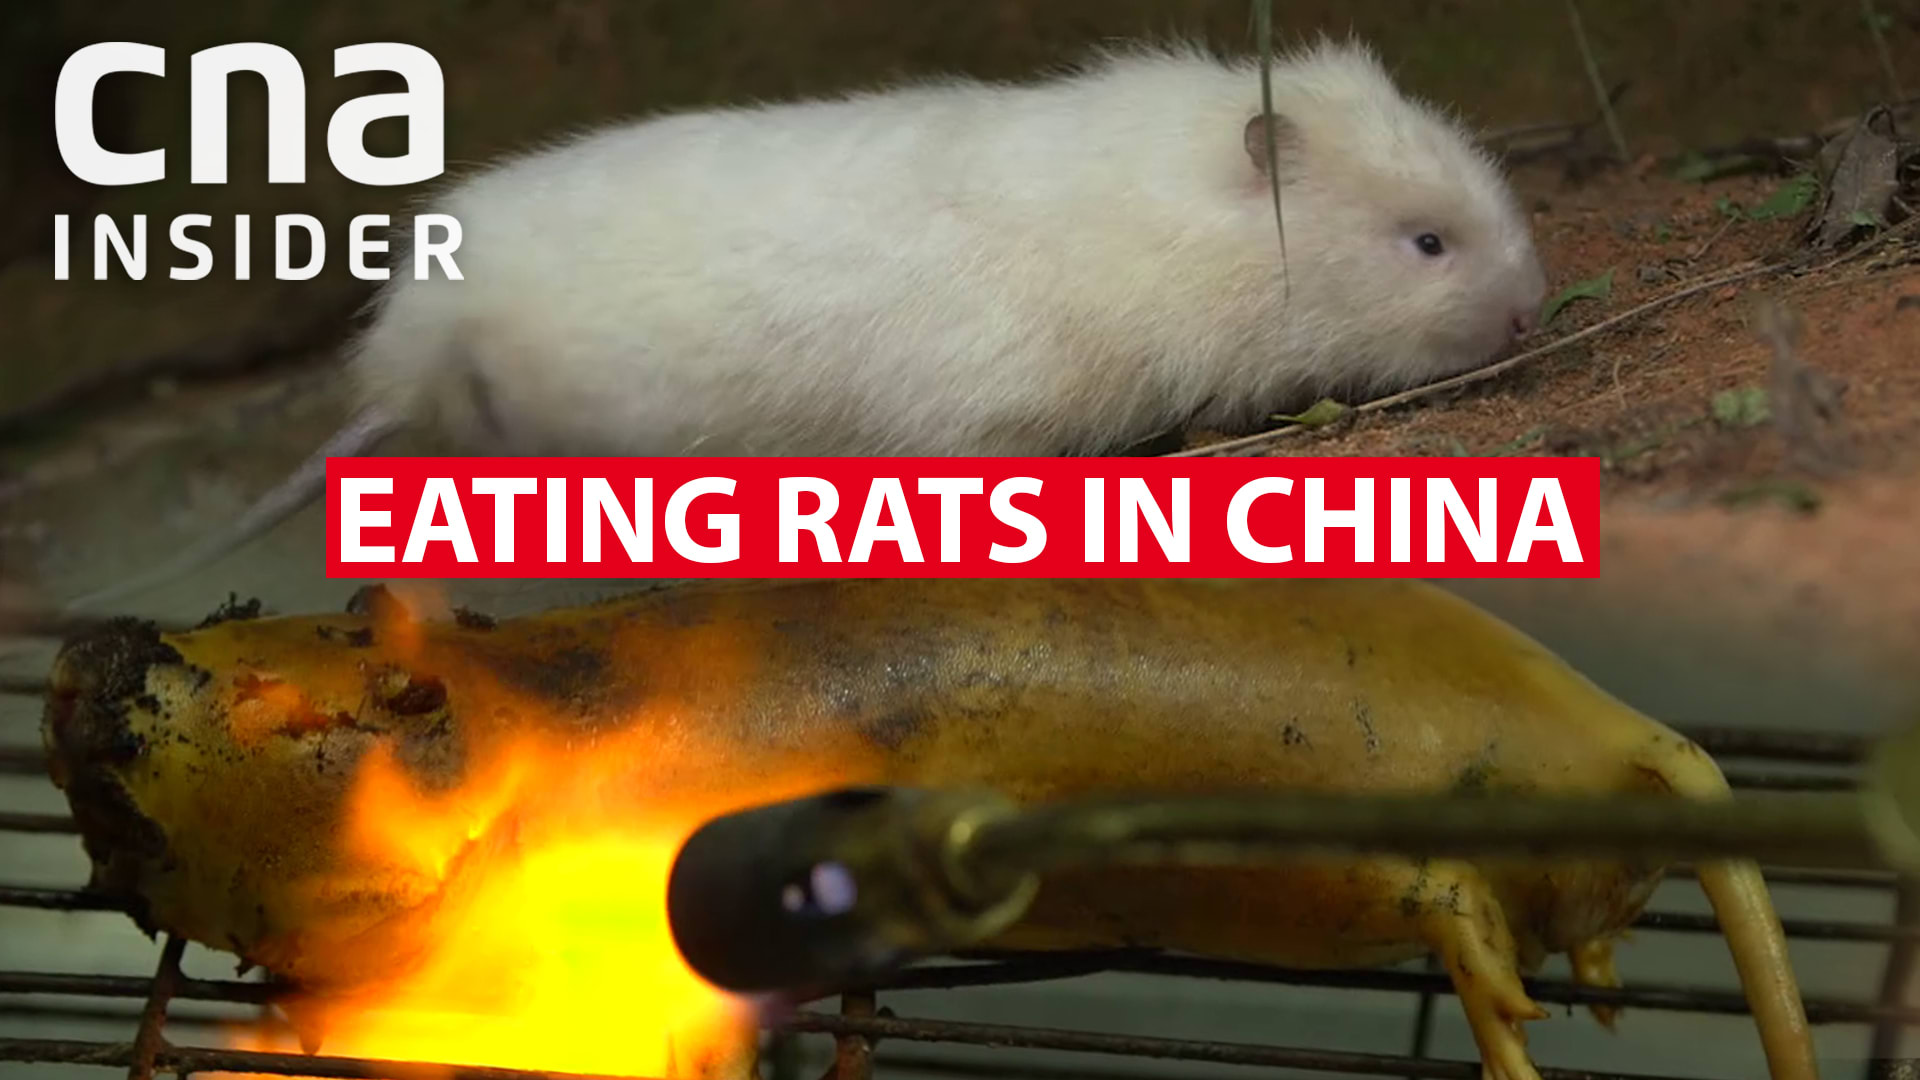 Eating bamboo rats in China